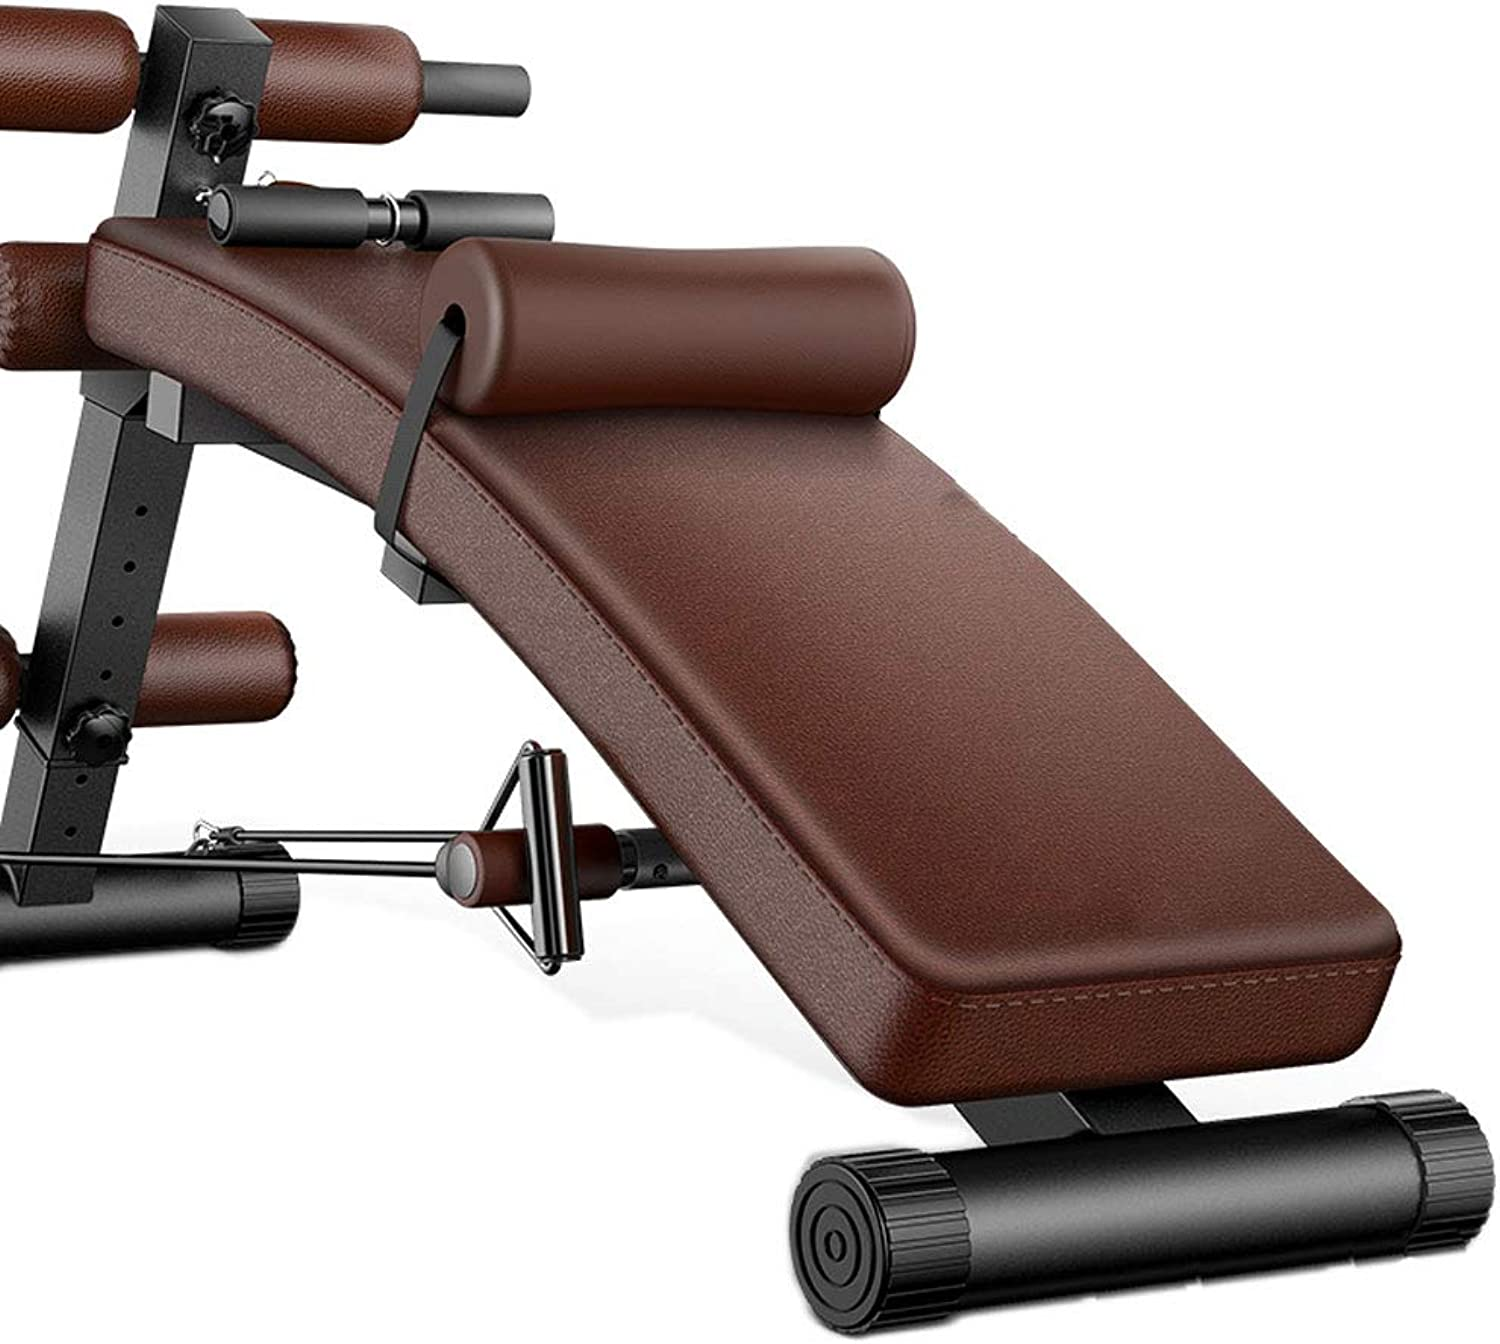 Multifunctional Supine Board Situps Abdomen Board Home Exercise Fitness Equipment Abdomen Dumbbell Bench